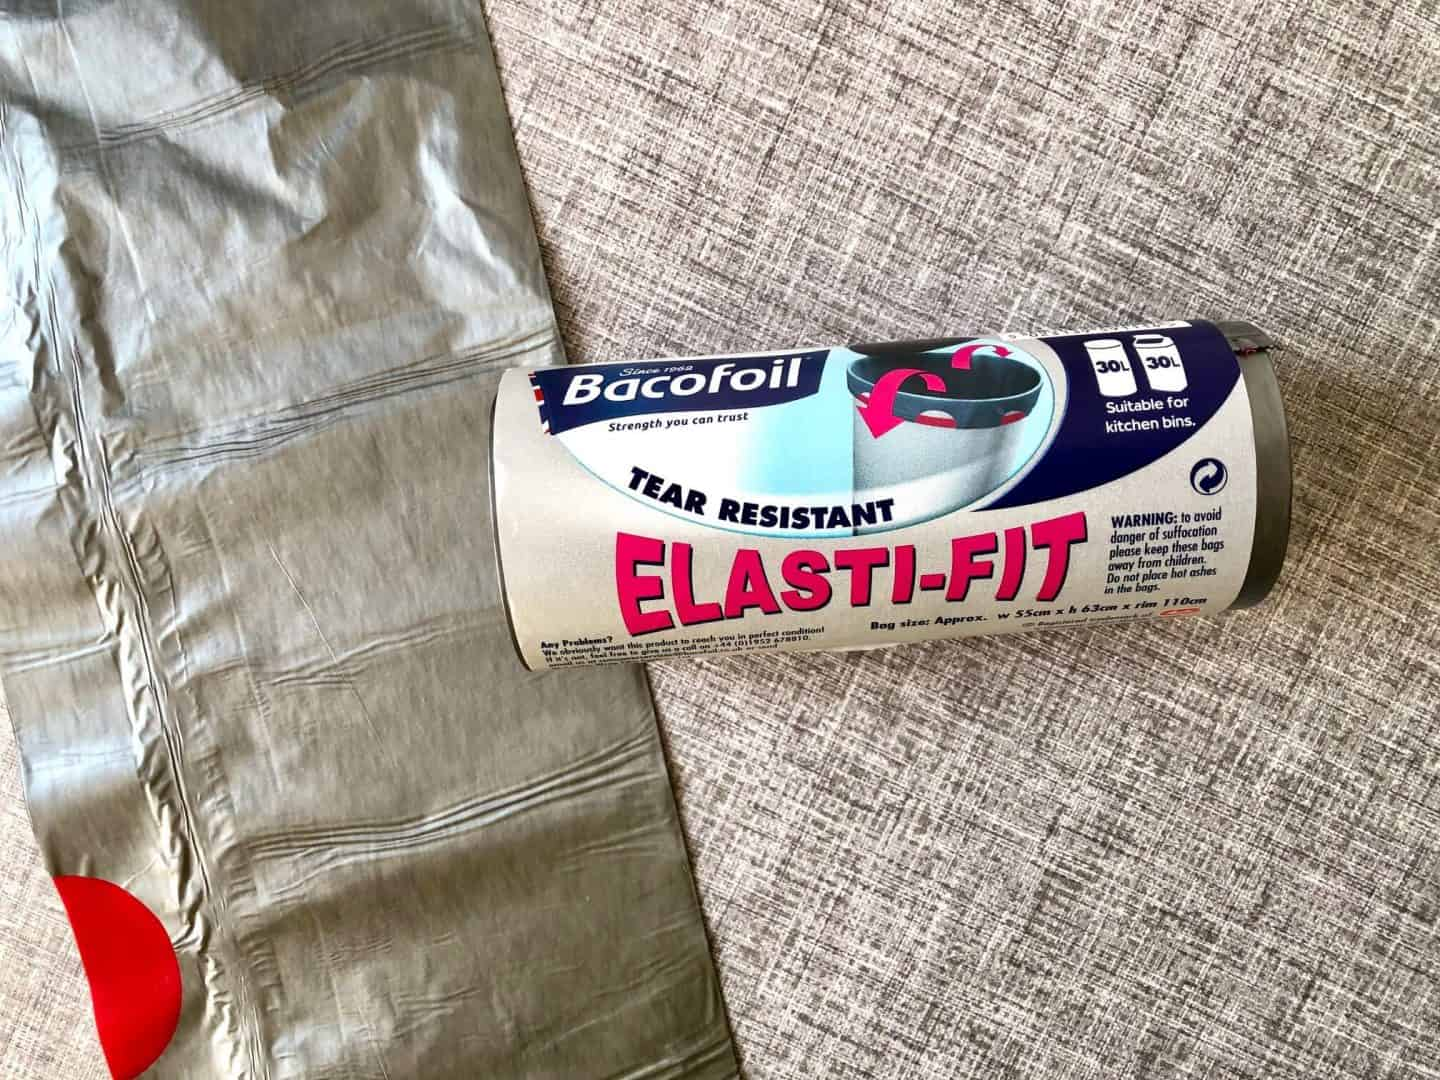 Bacofoil elastifit bin liners - What We Have Enjoyed In March